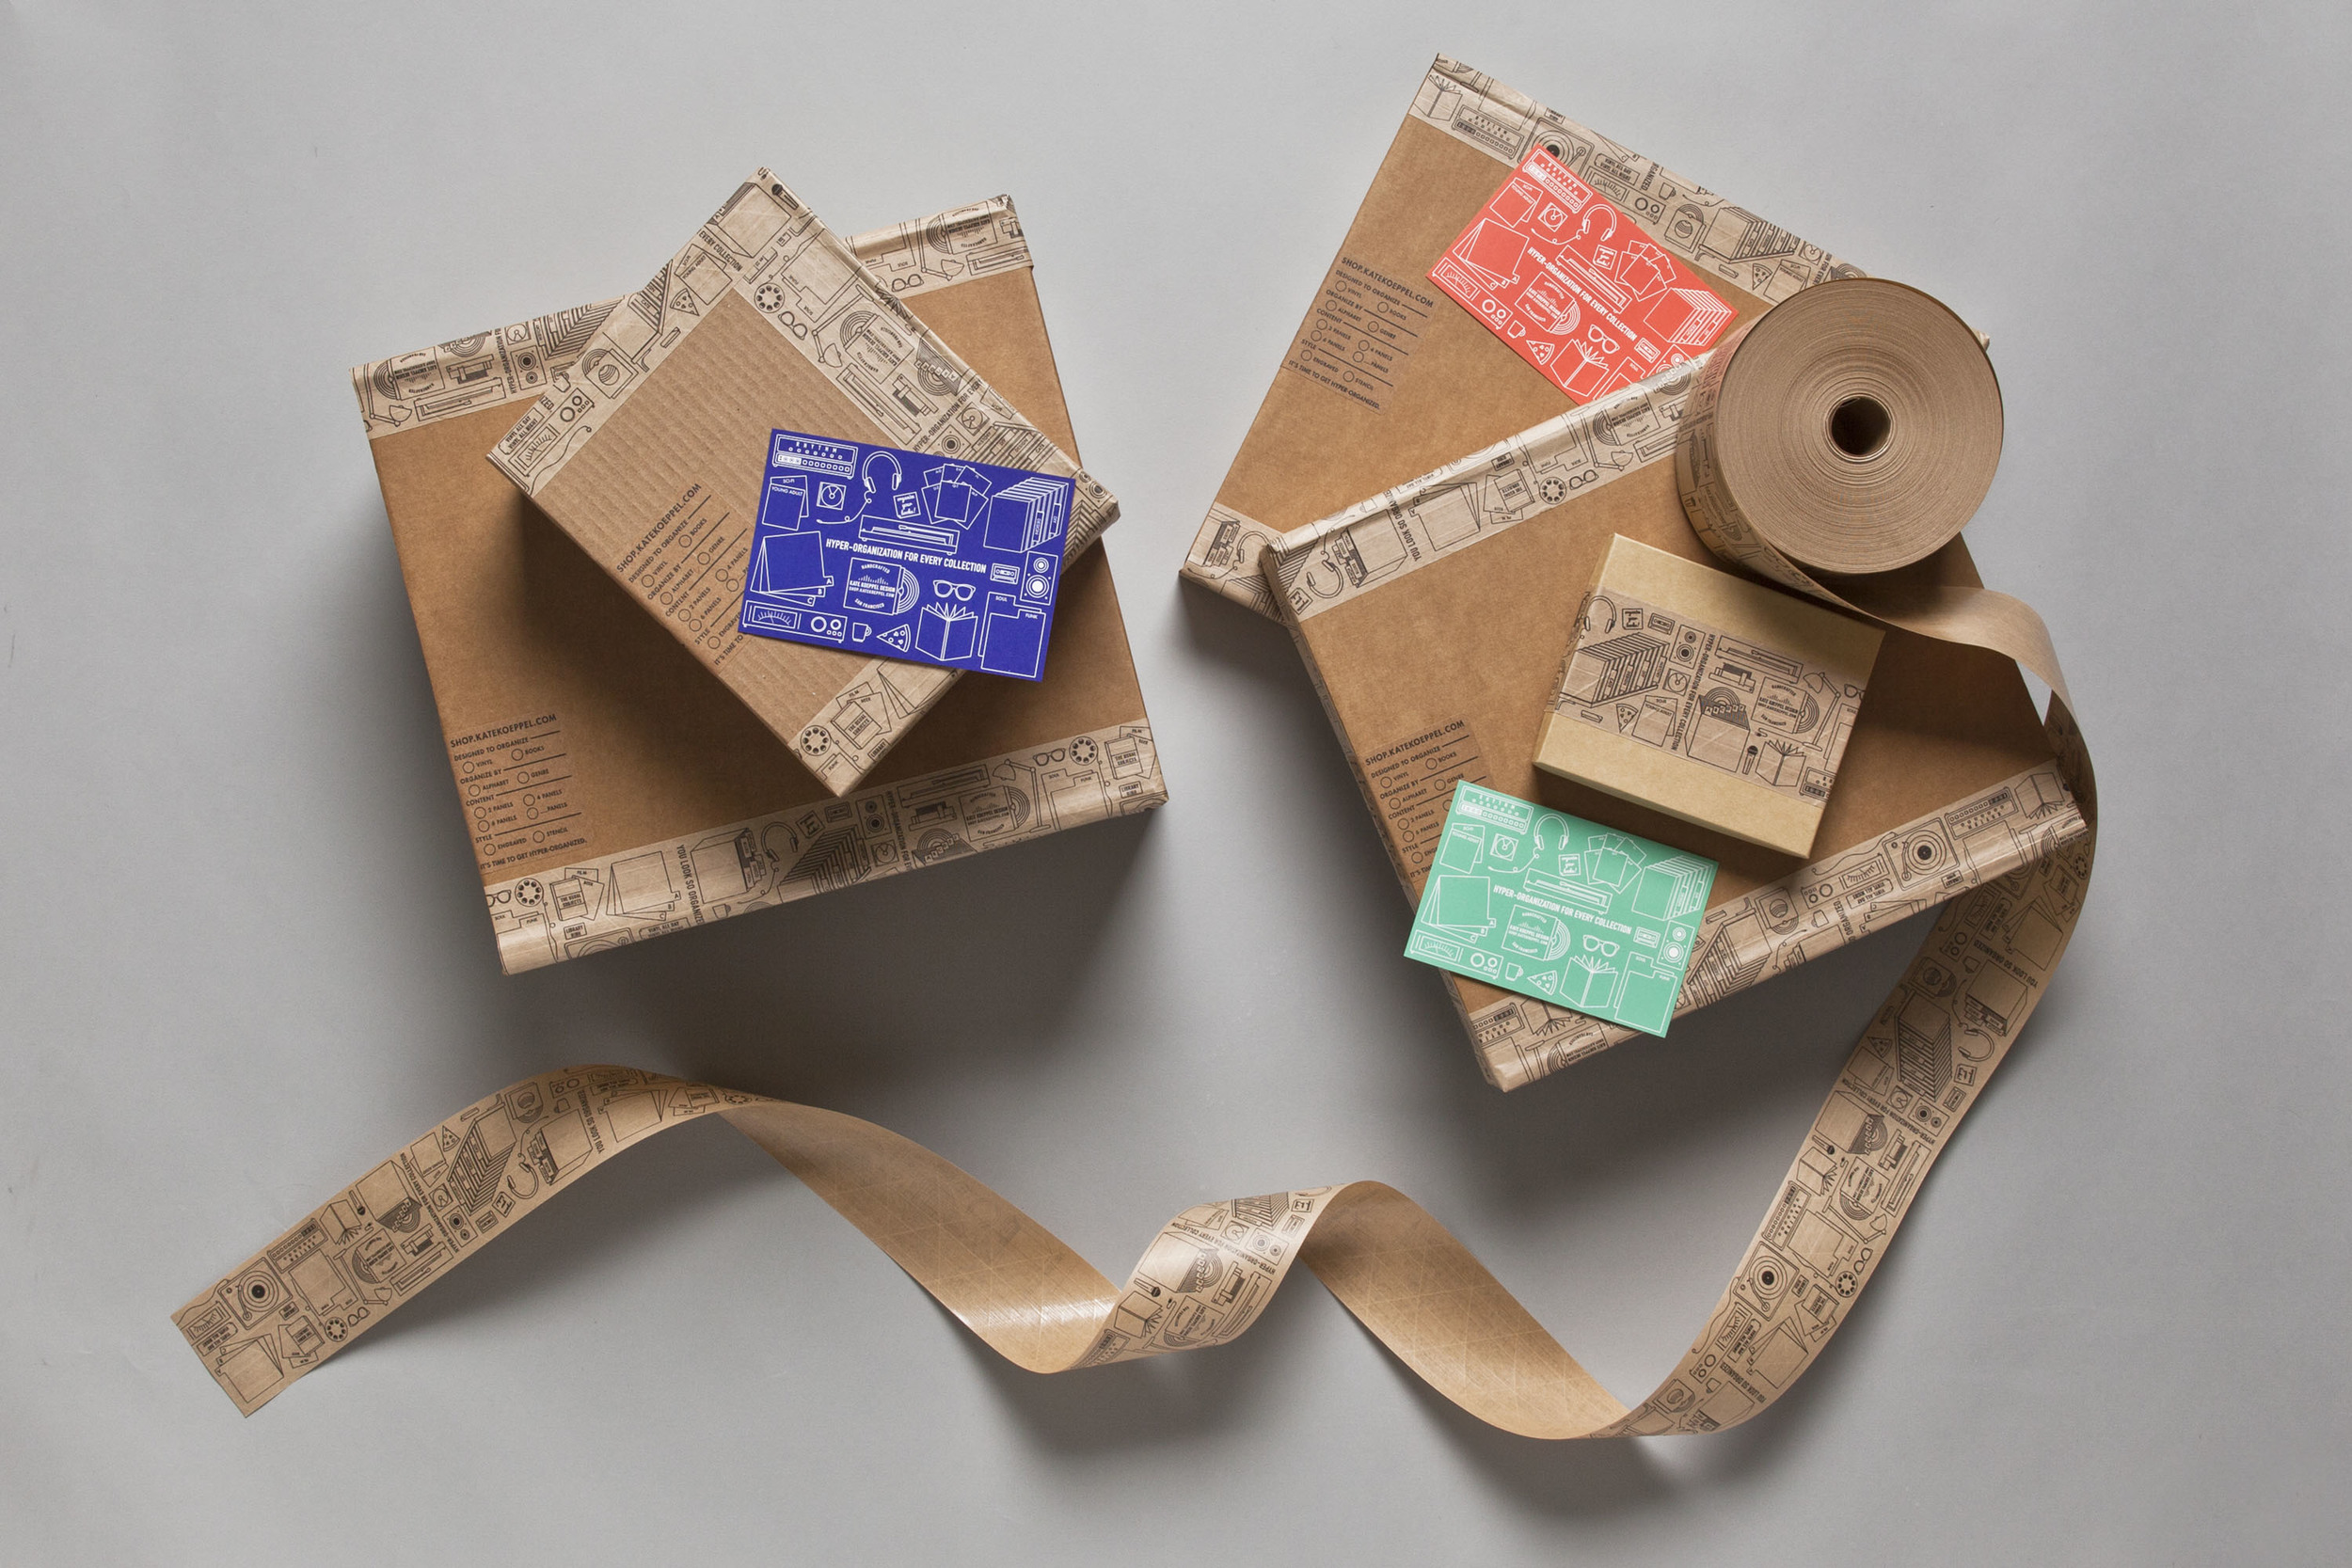 There are 30 illustrative elements in every 12 inch segment of tape.